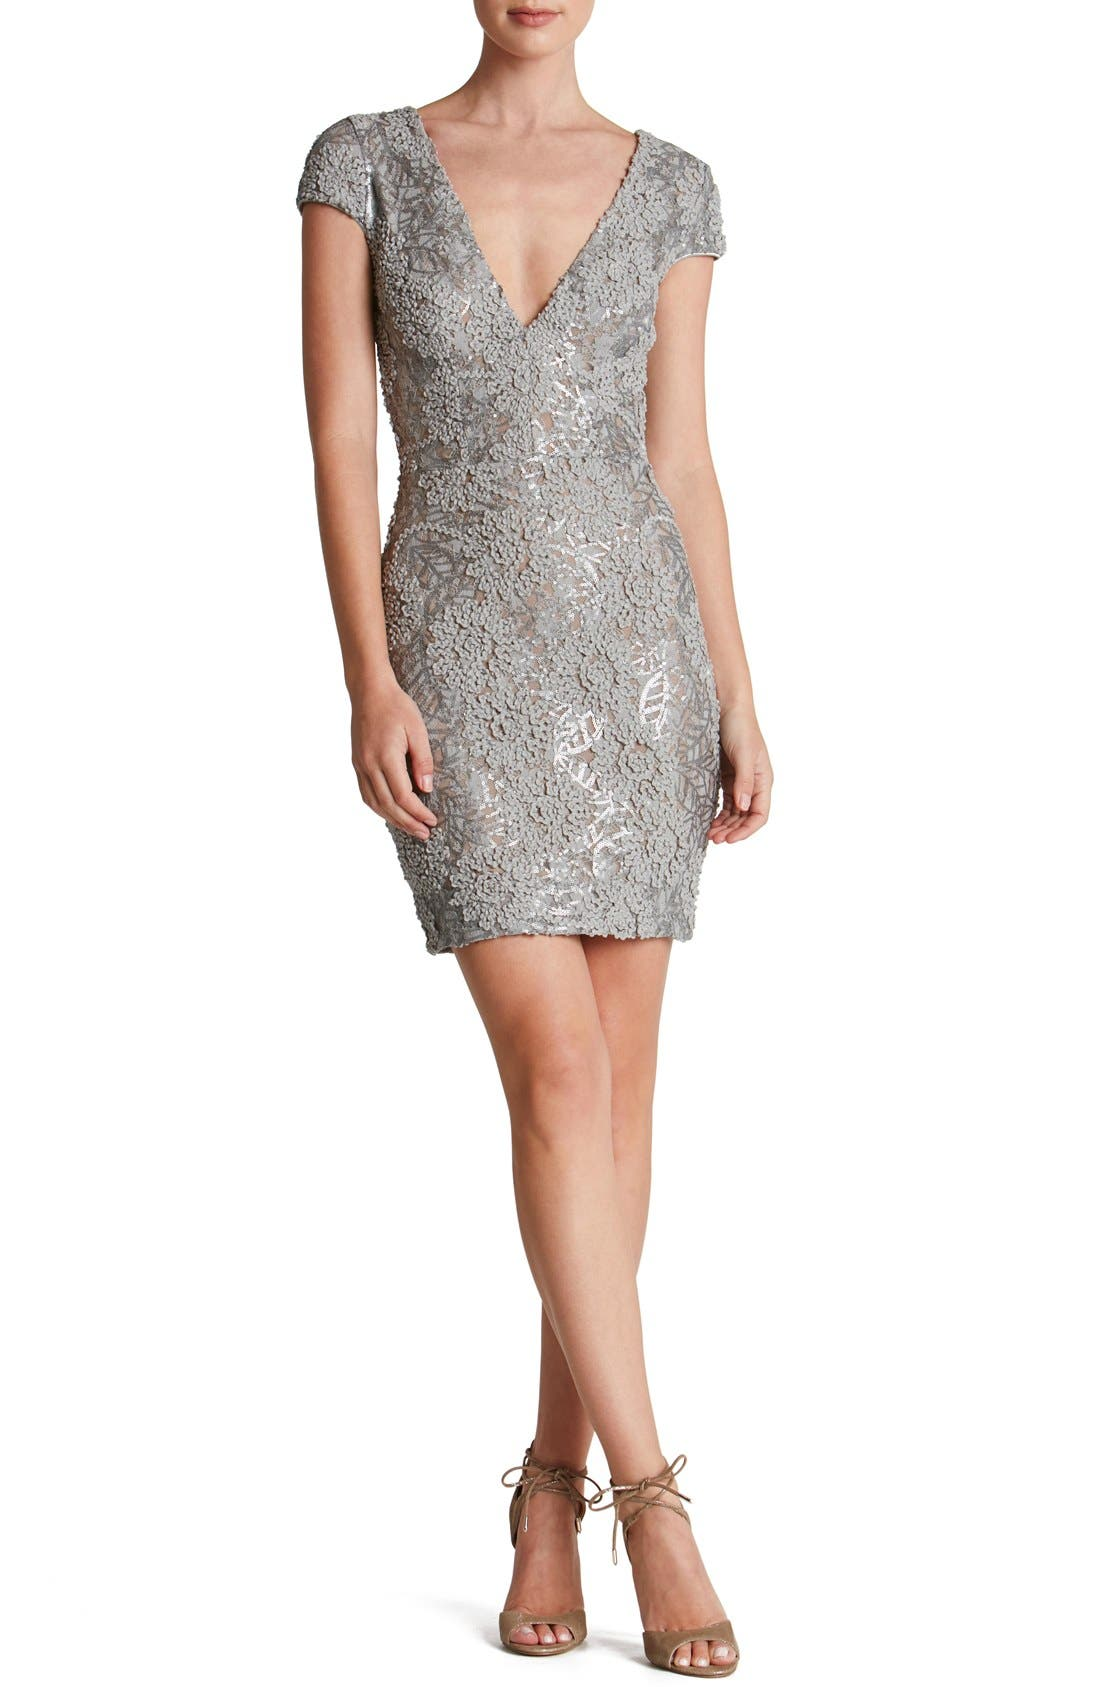 DRESS THE POPULATION 'Zoe' Embellished Mesh Body-Con Dress